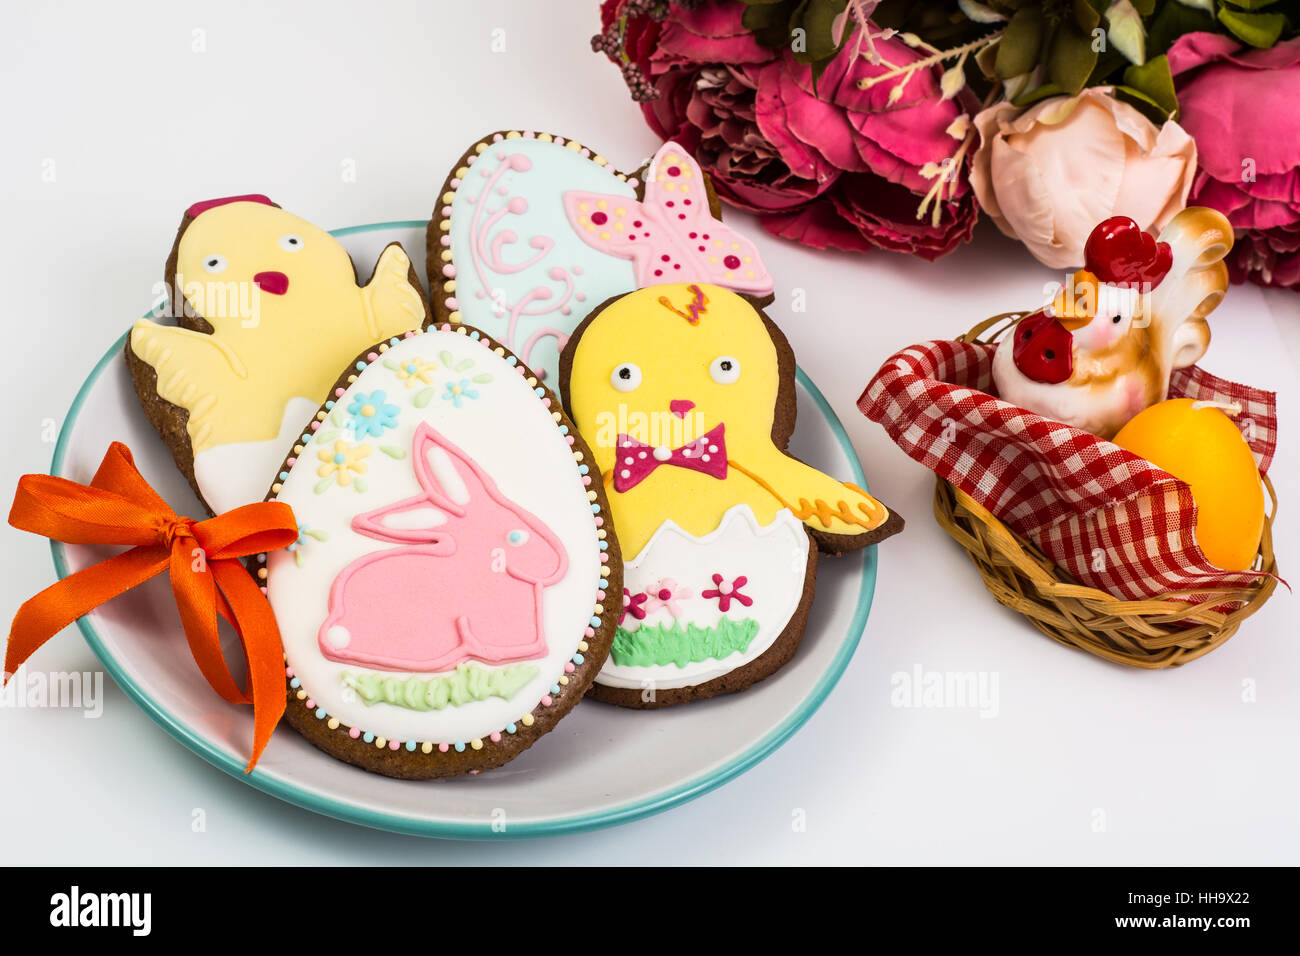 easter themed cakes on a white background stock photo 131139738 alamy